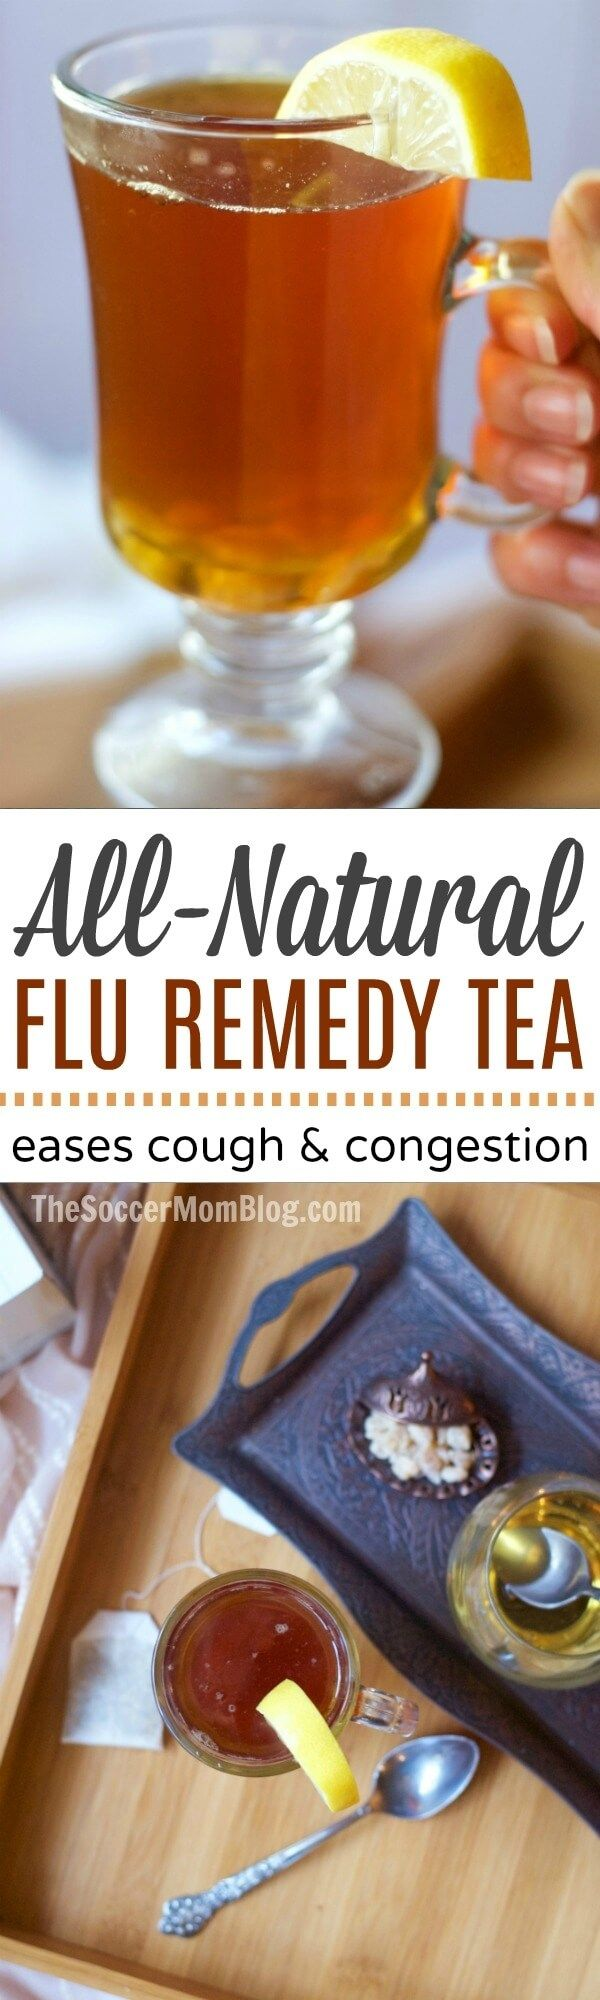 This soothing flu fighting tea is a simple, effective home remedy for easing seasonal cold and flu symptoms. Ready in minutes & tastes amazing! #ConquerTheCold #ad #recipe